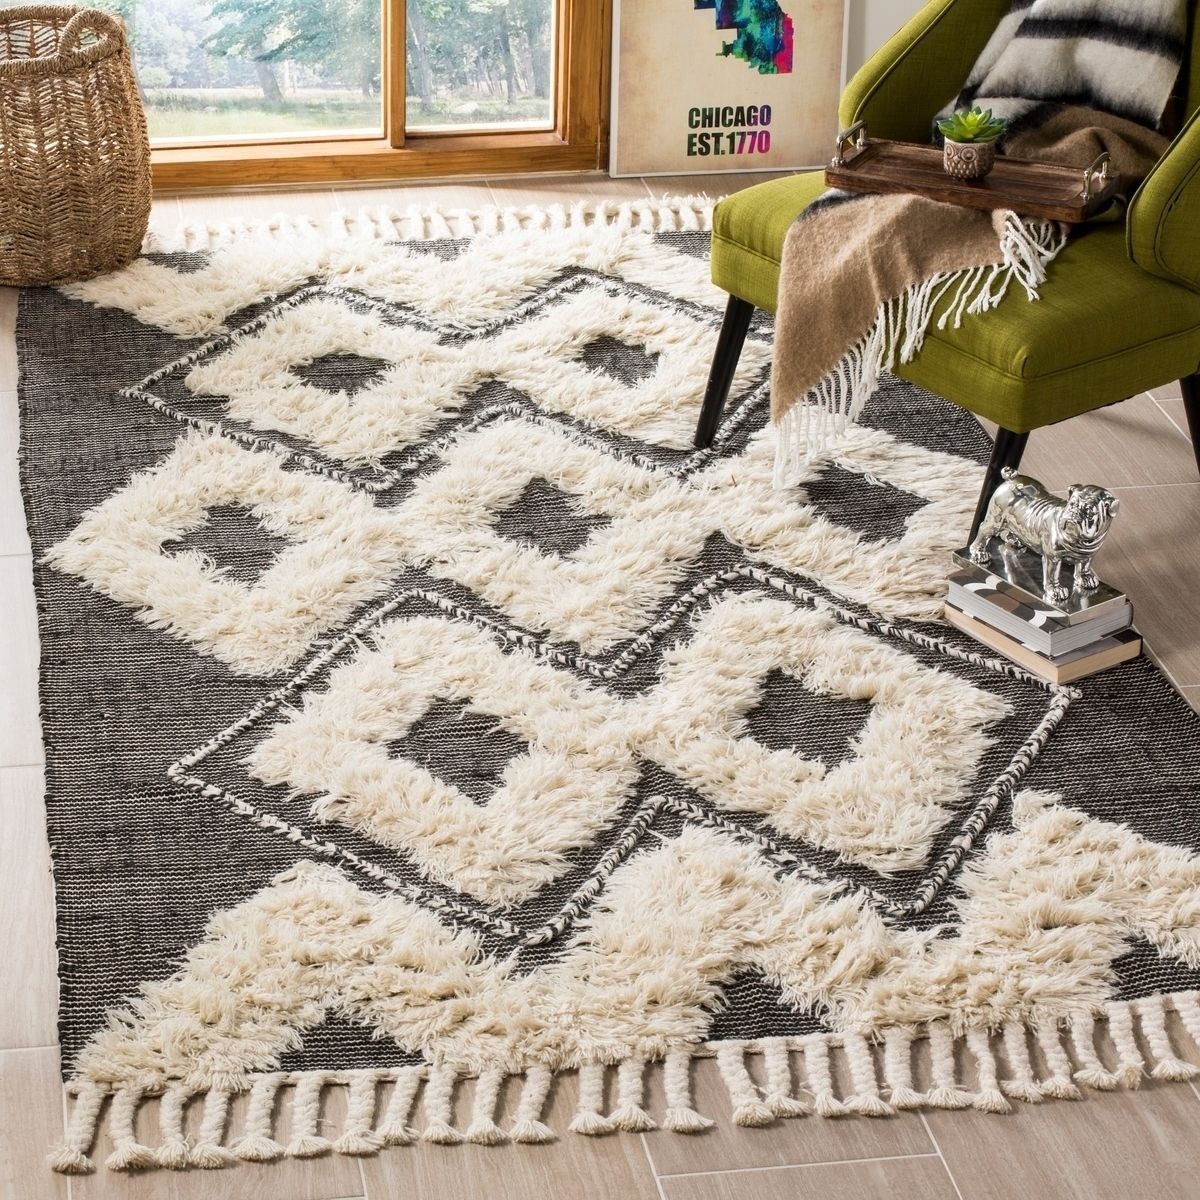 Buy Area Rugs Online At Overstock Our Best Rugs Deals Rugs Area Rugs Colorful Rugs